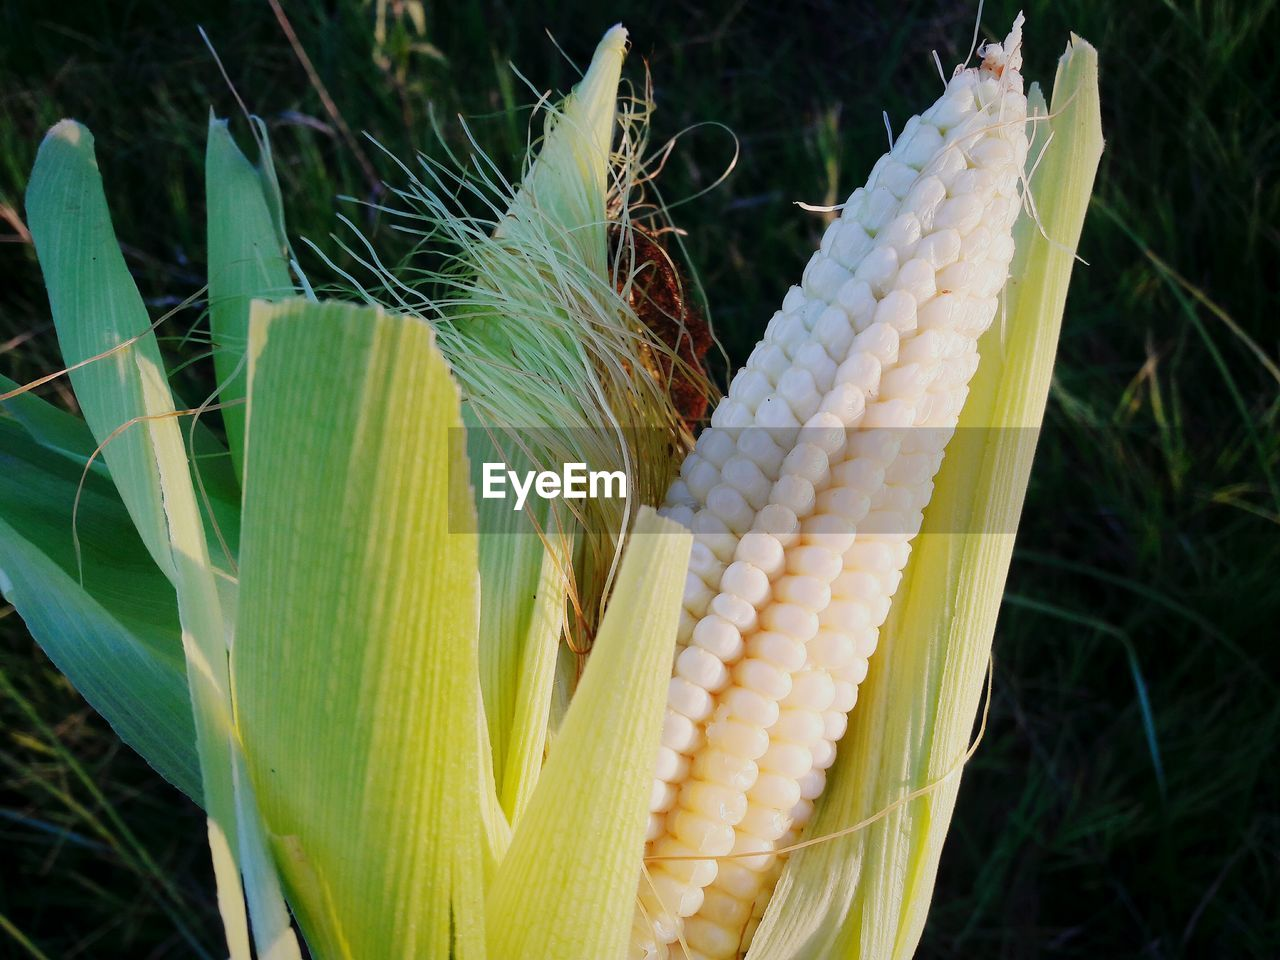 growth, plant, close-up, day, no people, outdoors, focus on foreground, nature, green color, corn, freshness, fragility, beauty in nature